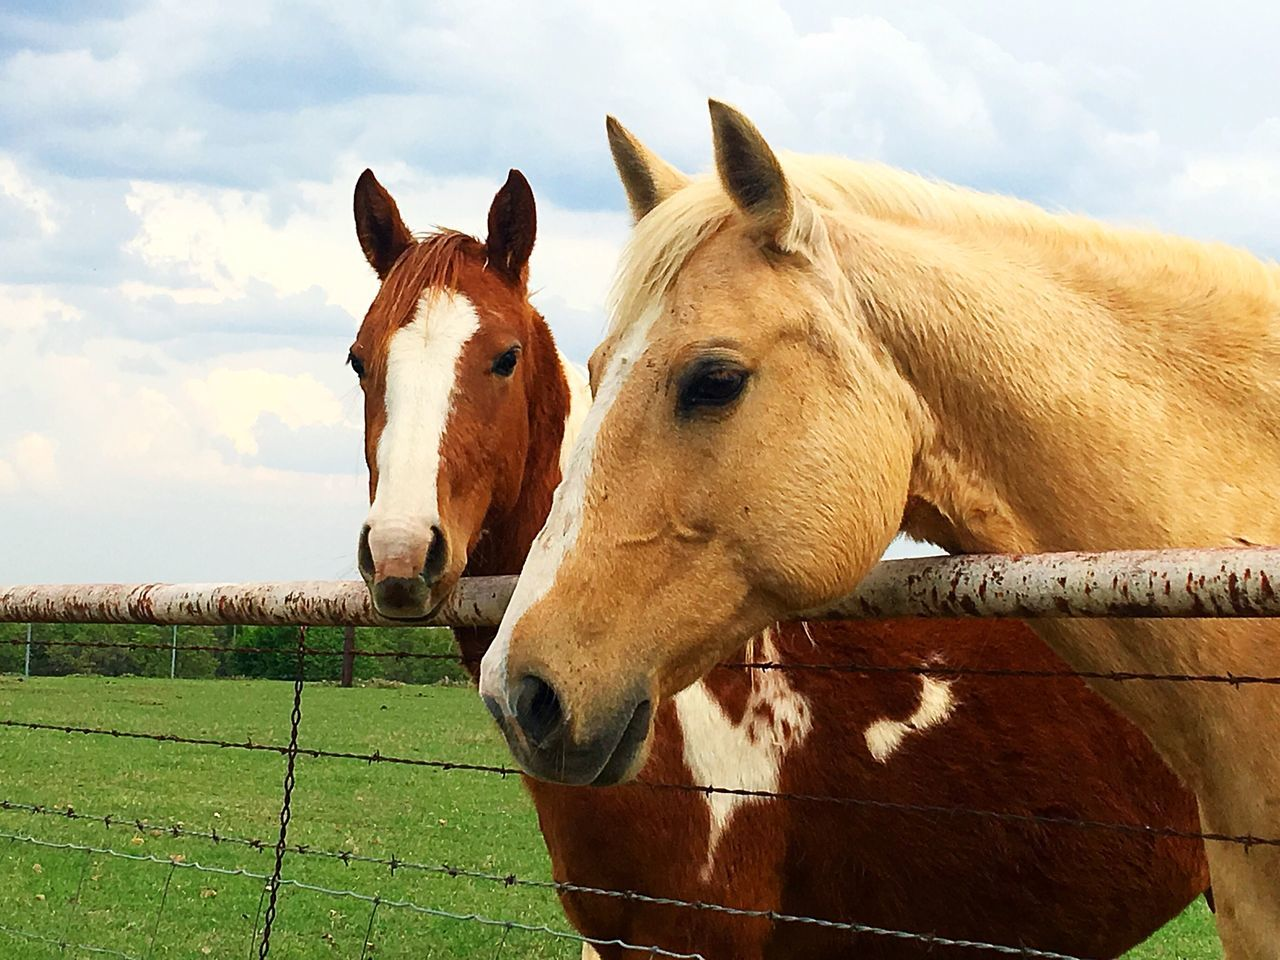 Horses Horse Photography  Countryside Backroads IPhone IPhoneography Pasture Fence Horse Domestic Animals Animal Themes Sky Herbivorous Mammal Livestock Standing Brown Outdoors Field No People Paddock Day Grass Togetherness Nature Close-up